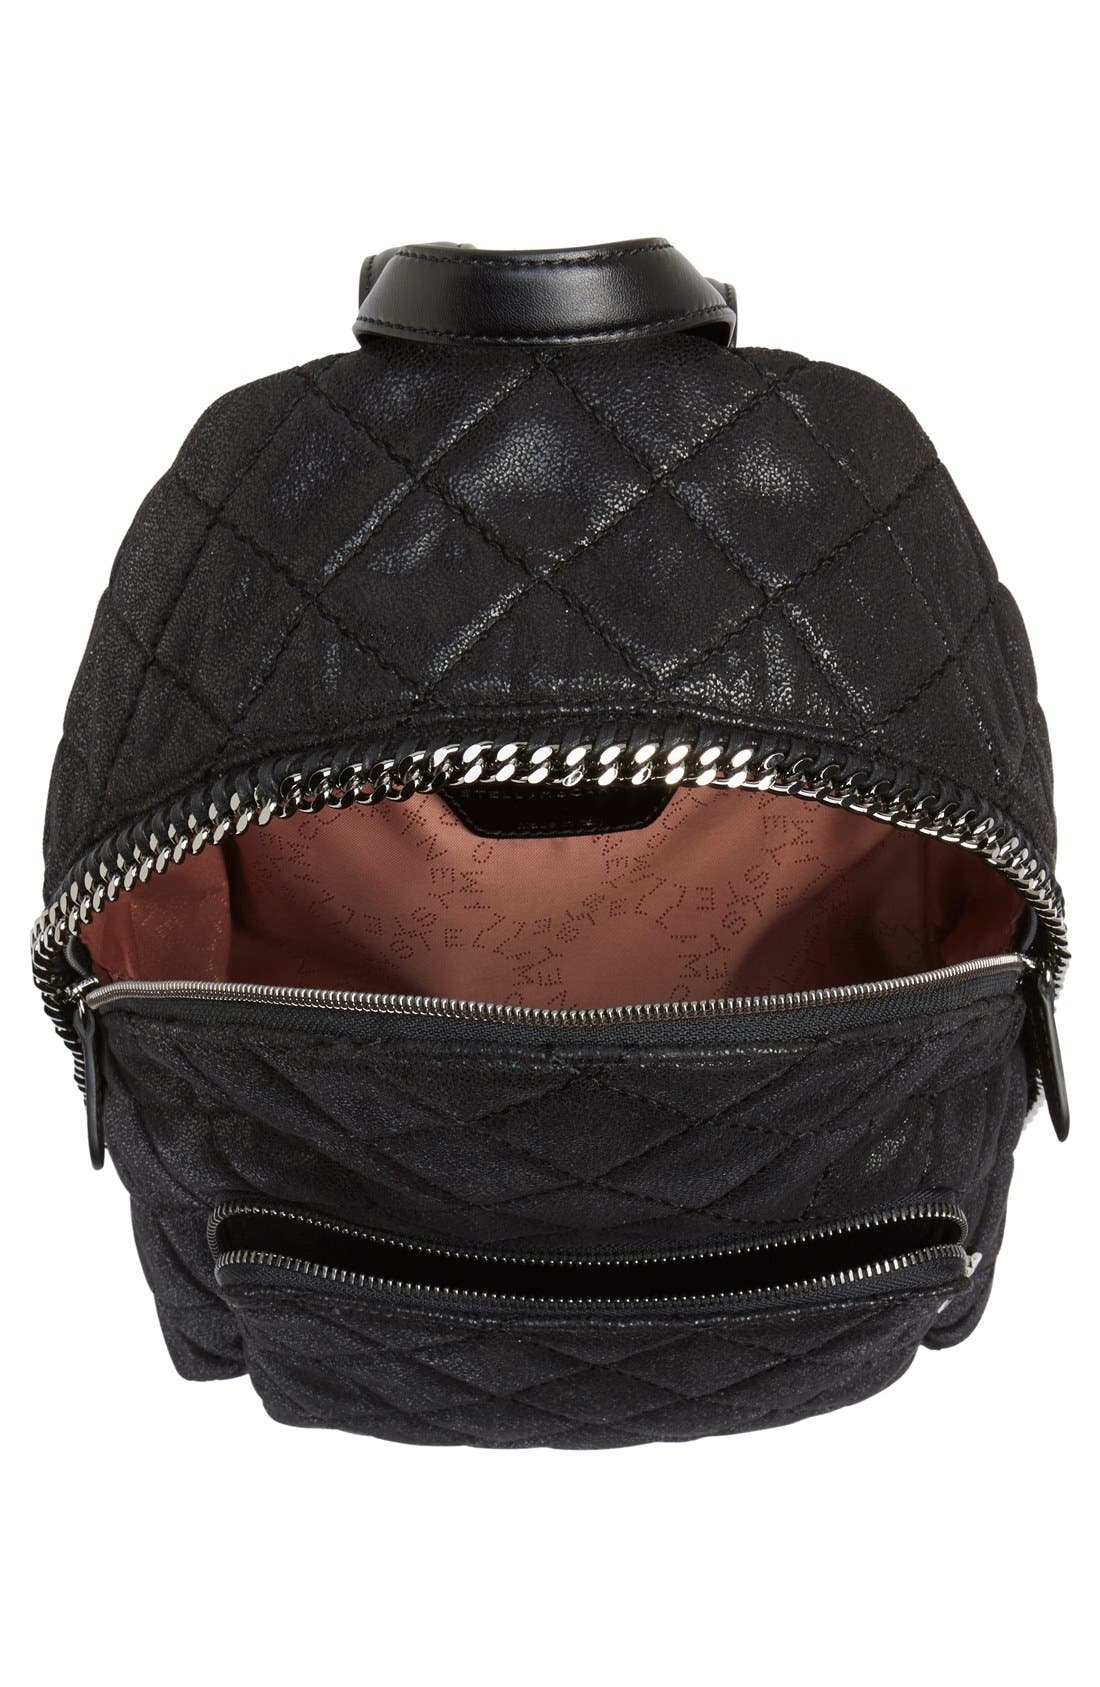 Alternate Image 4  - Stella McCartney 'Mini Falabella' Faux Leather Quilted Backpack